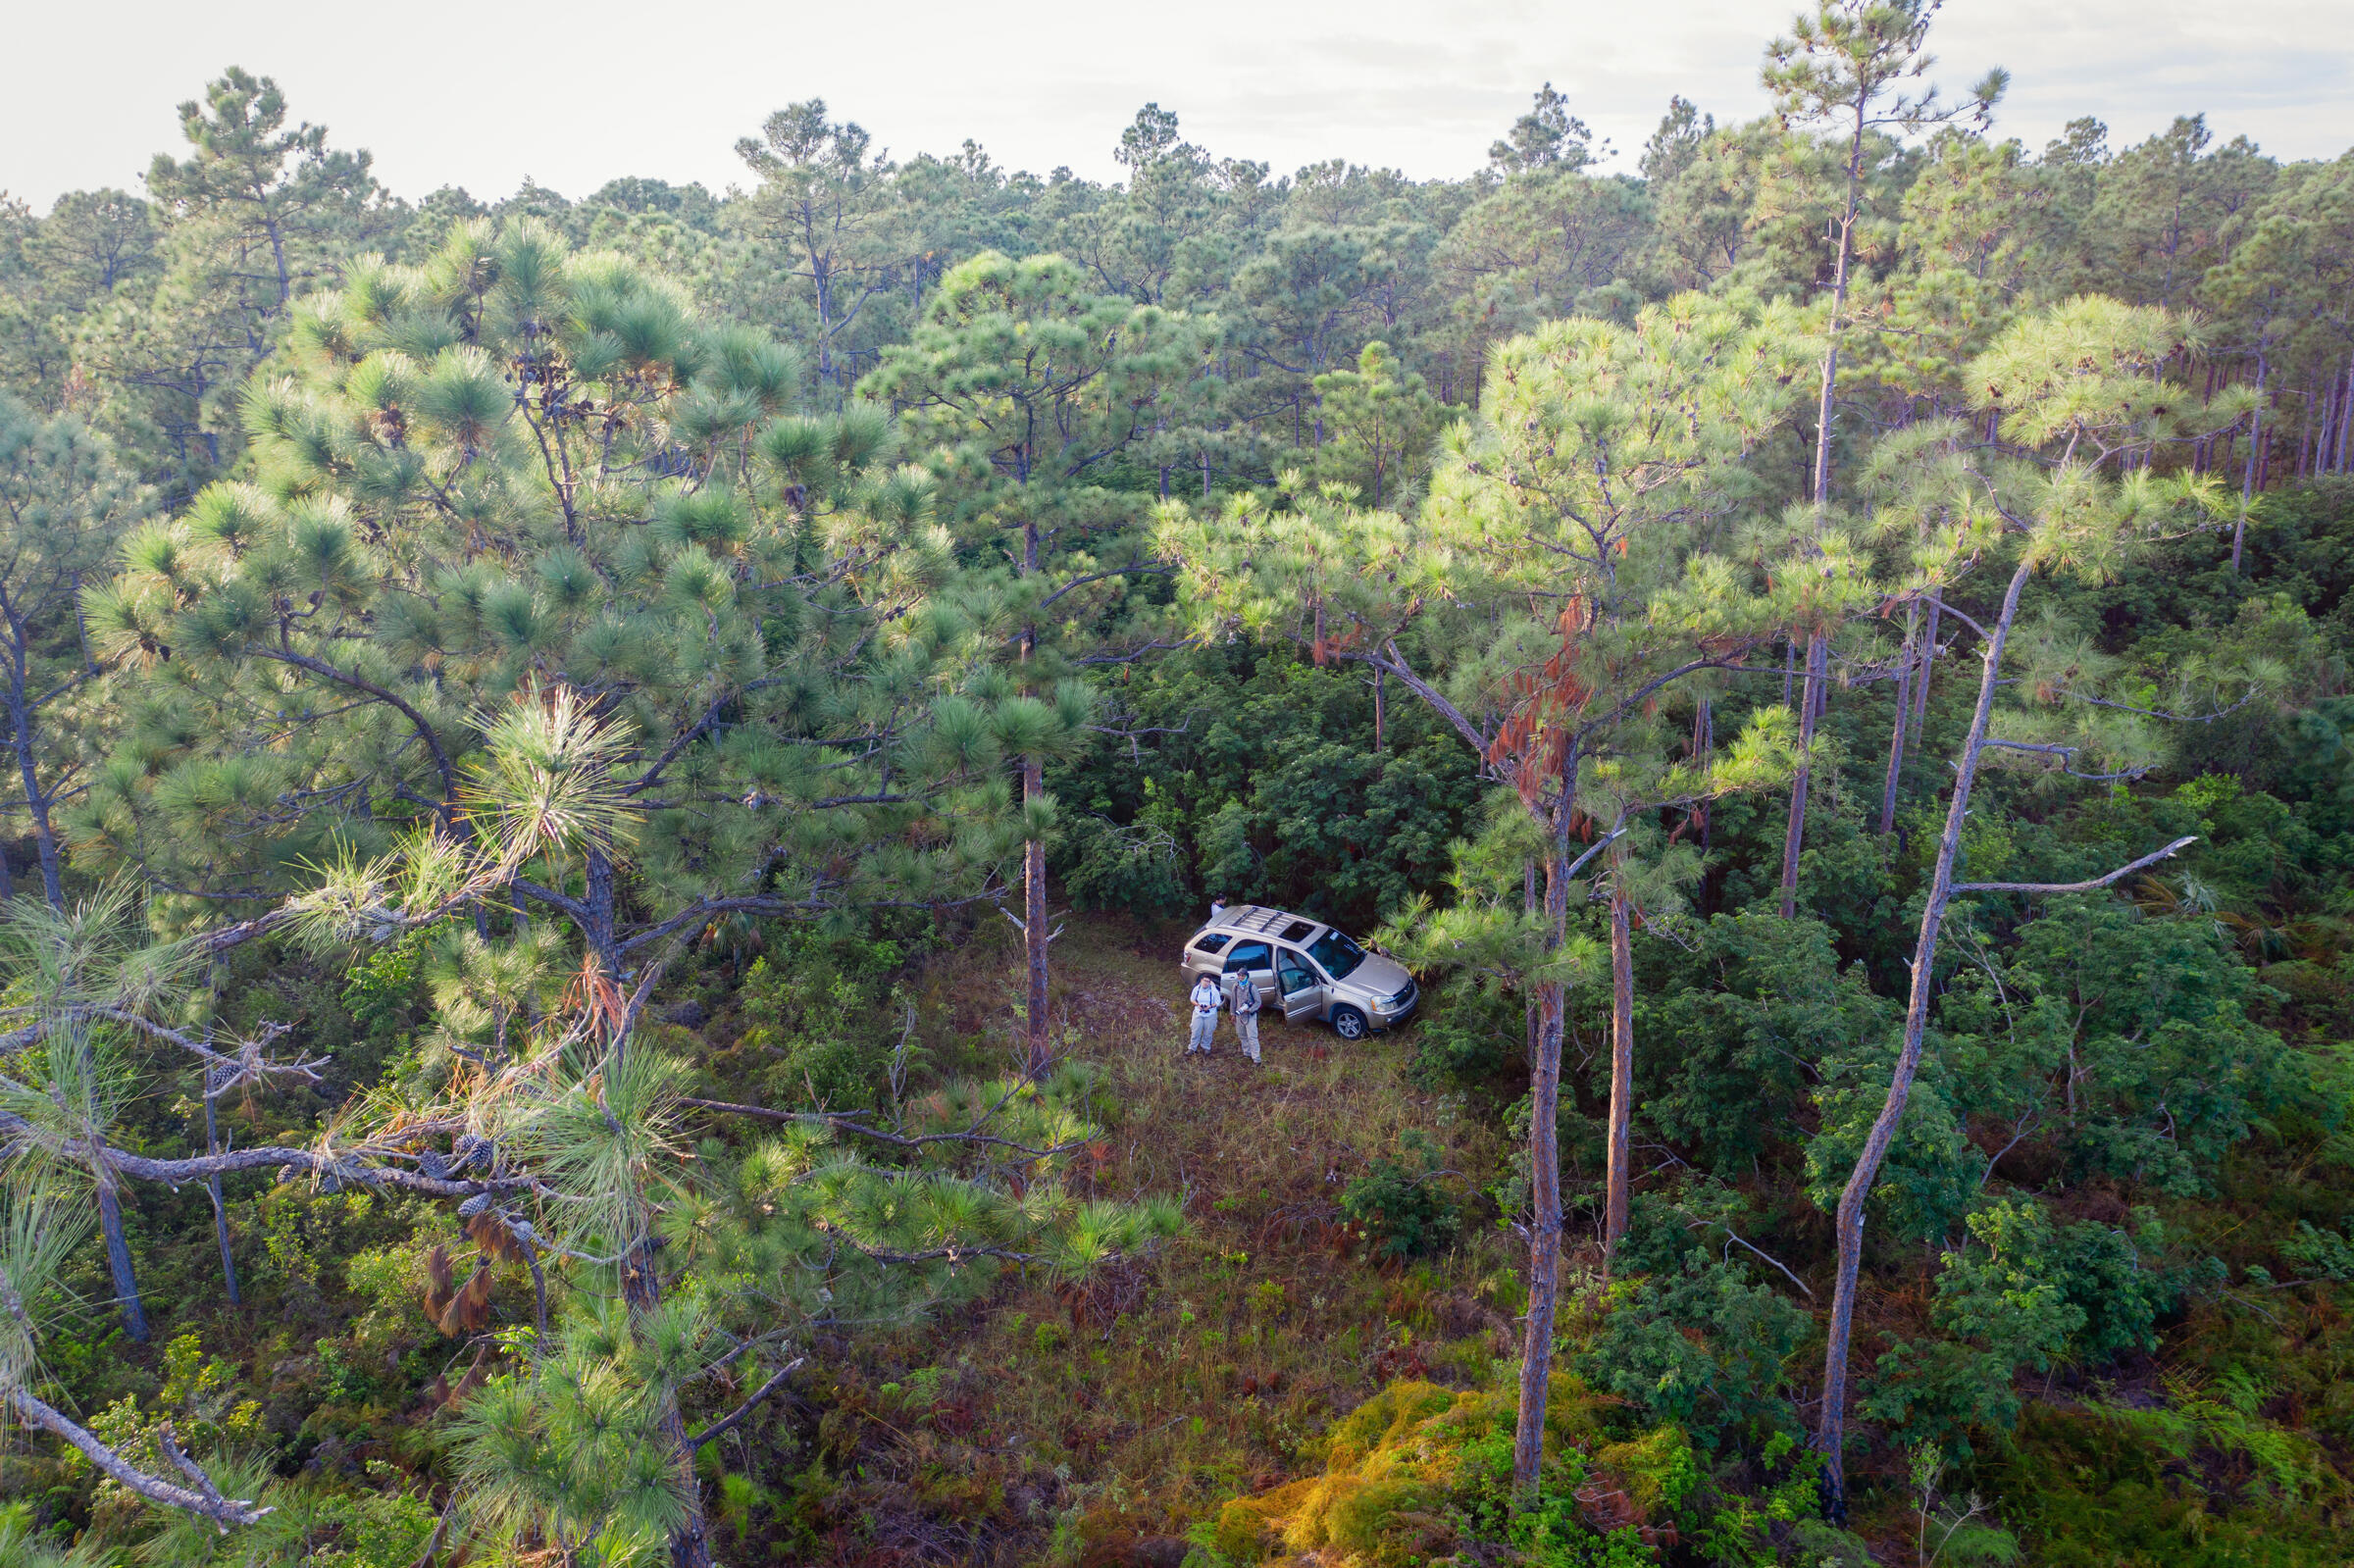 Vegetation and bird surveys being conducted by Audubon and Bahamas National Trust staff in the South Abaco pine forest. Mike Fernandez/Audubon